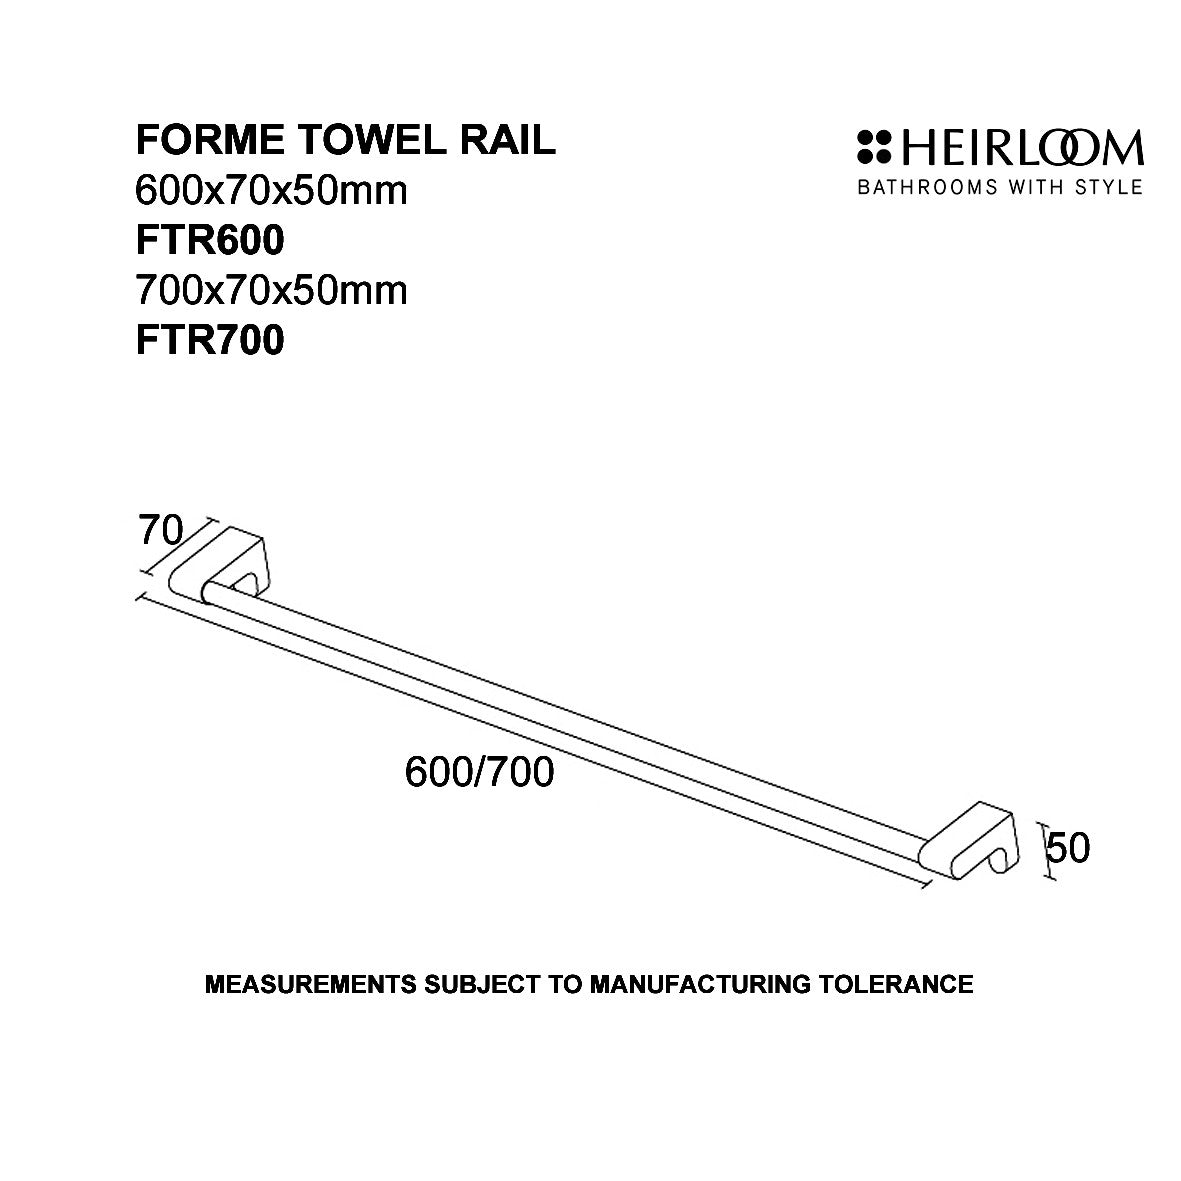 Forme Towel Rail | Online Bathroomware